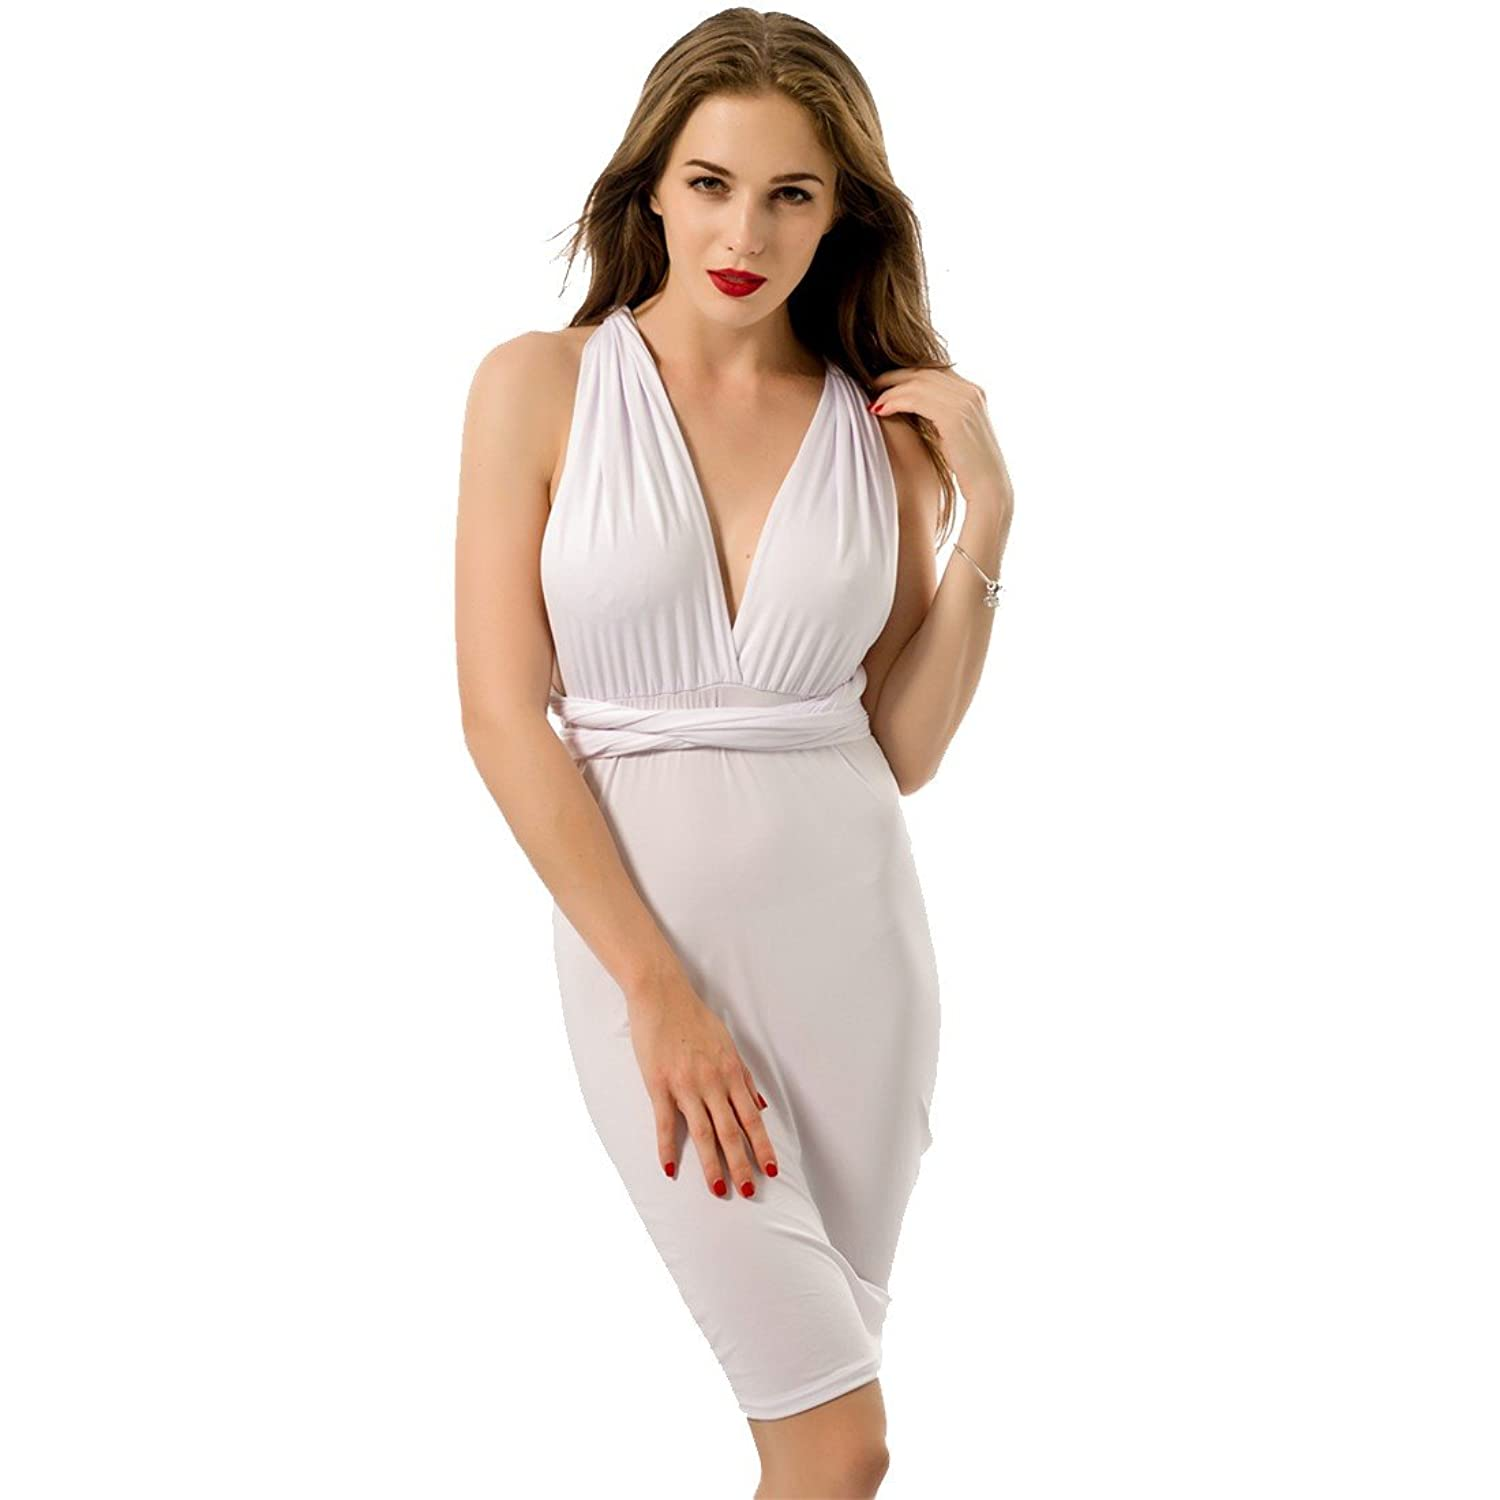 Women Sexy Midriff Backless Cocktail Club Sleeveless White Lace-Up Pencil Dress